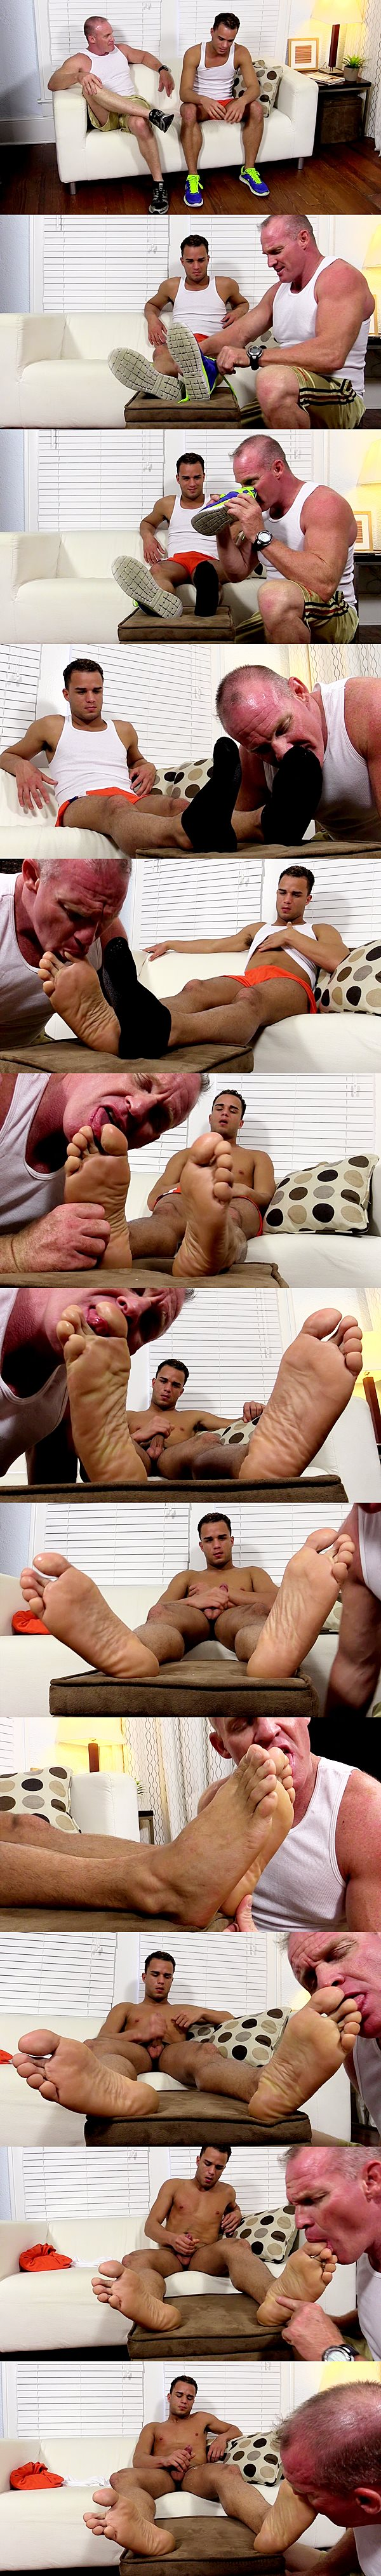 Foot master Dev worships hot dark skinned hunk Javi until Javi strokes his hot load out of his hard cock at Myfriendsfeet 02